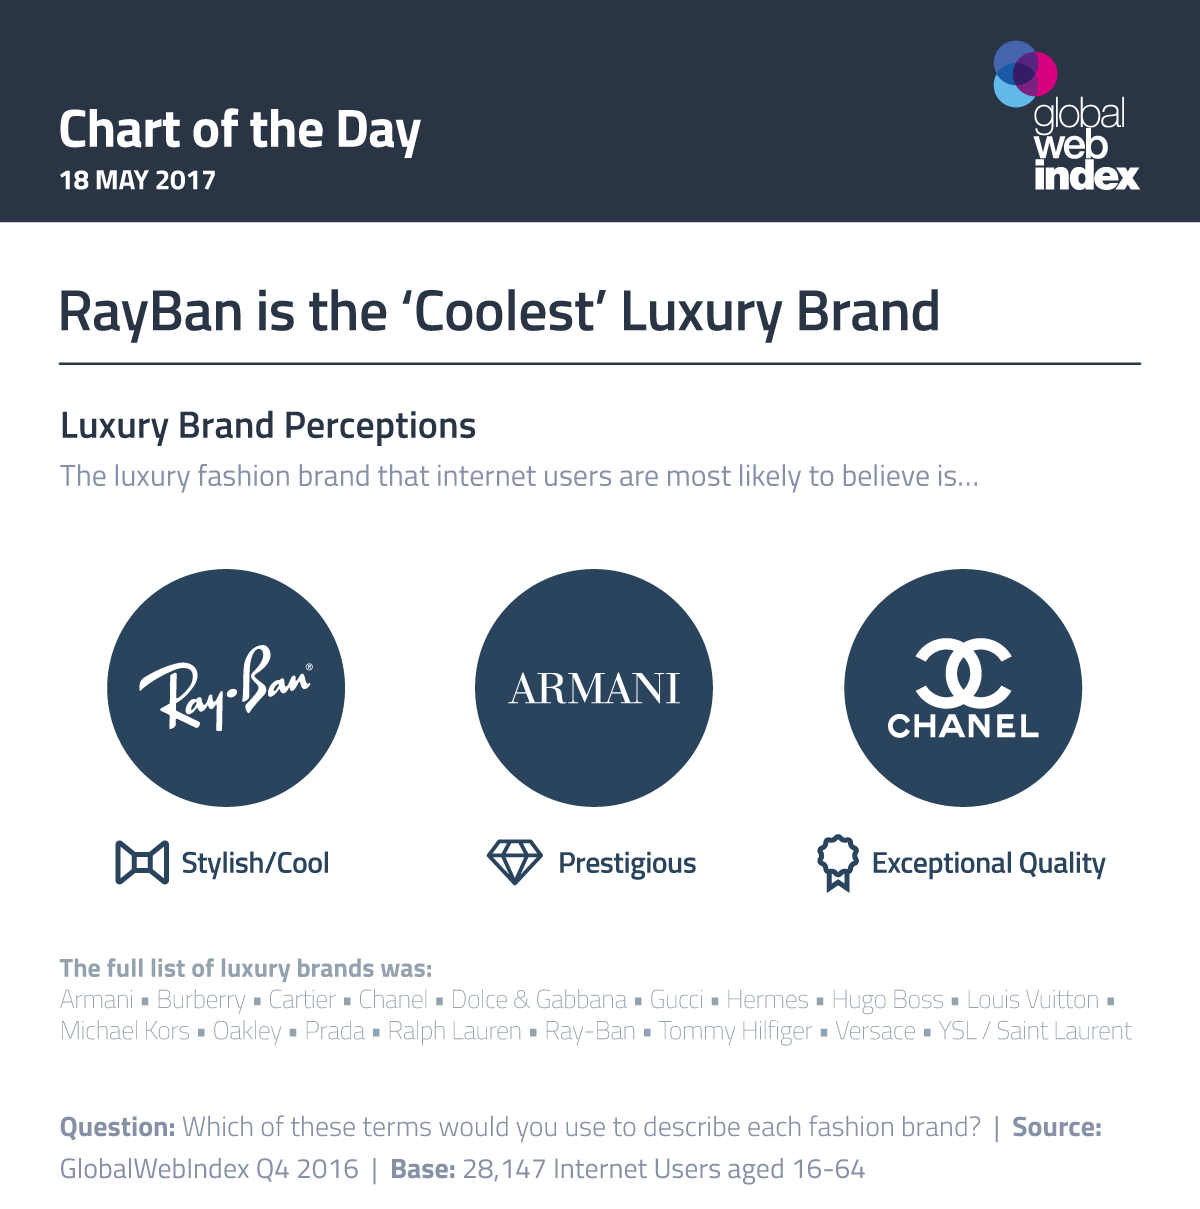 RayBan is the 'Coolest' Luxury Brand